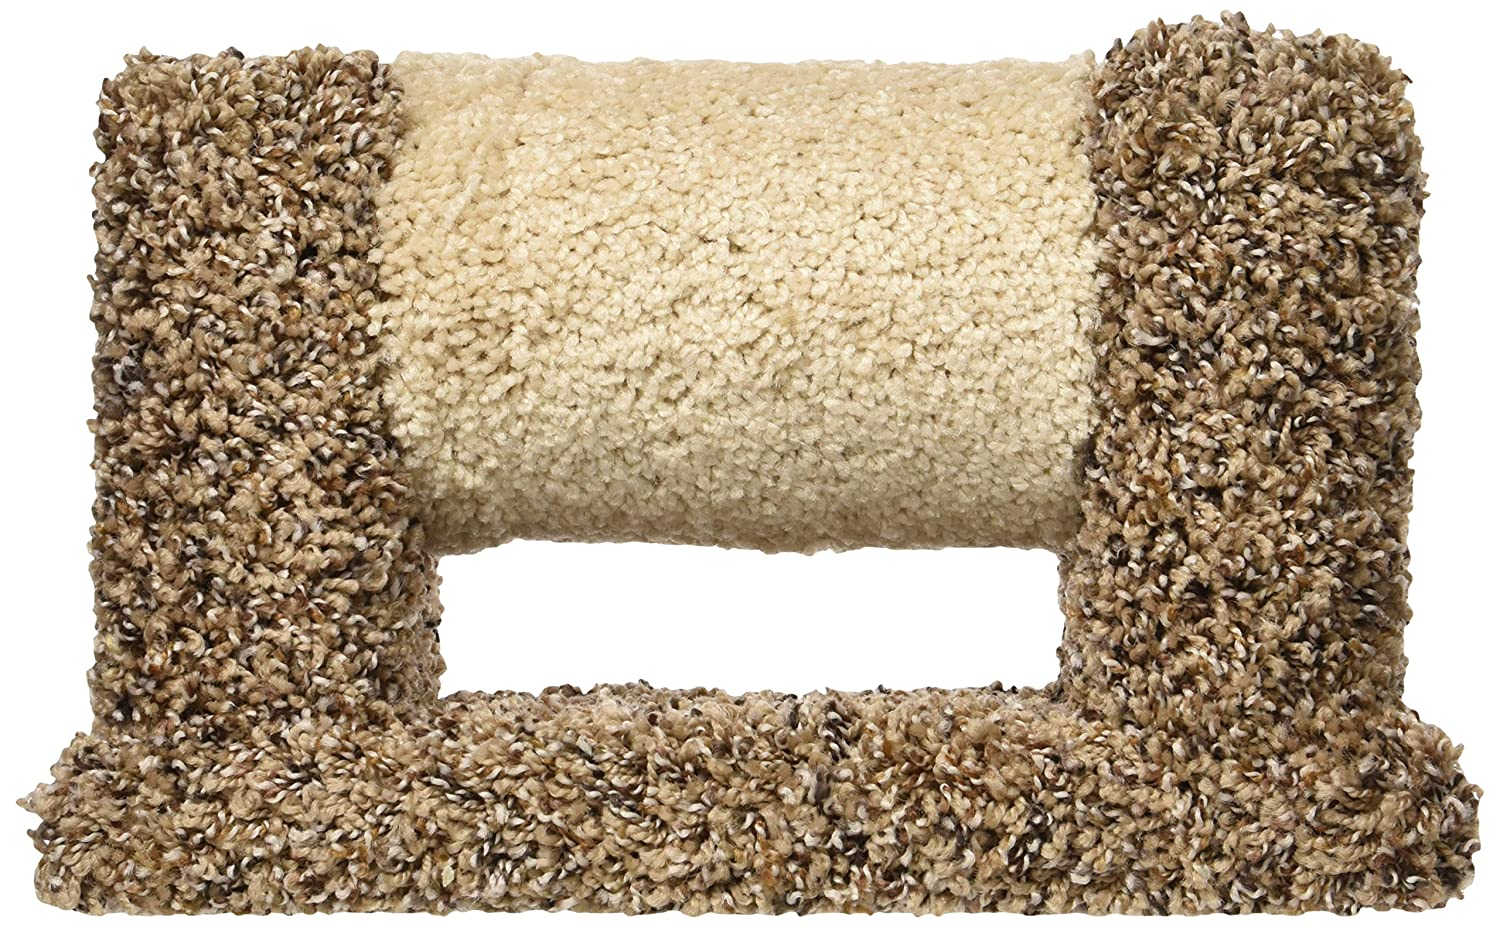 North American Pet Products 7-Inch Kitty Roller Toy 13.x5x7